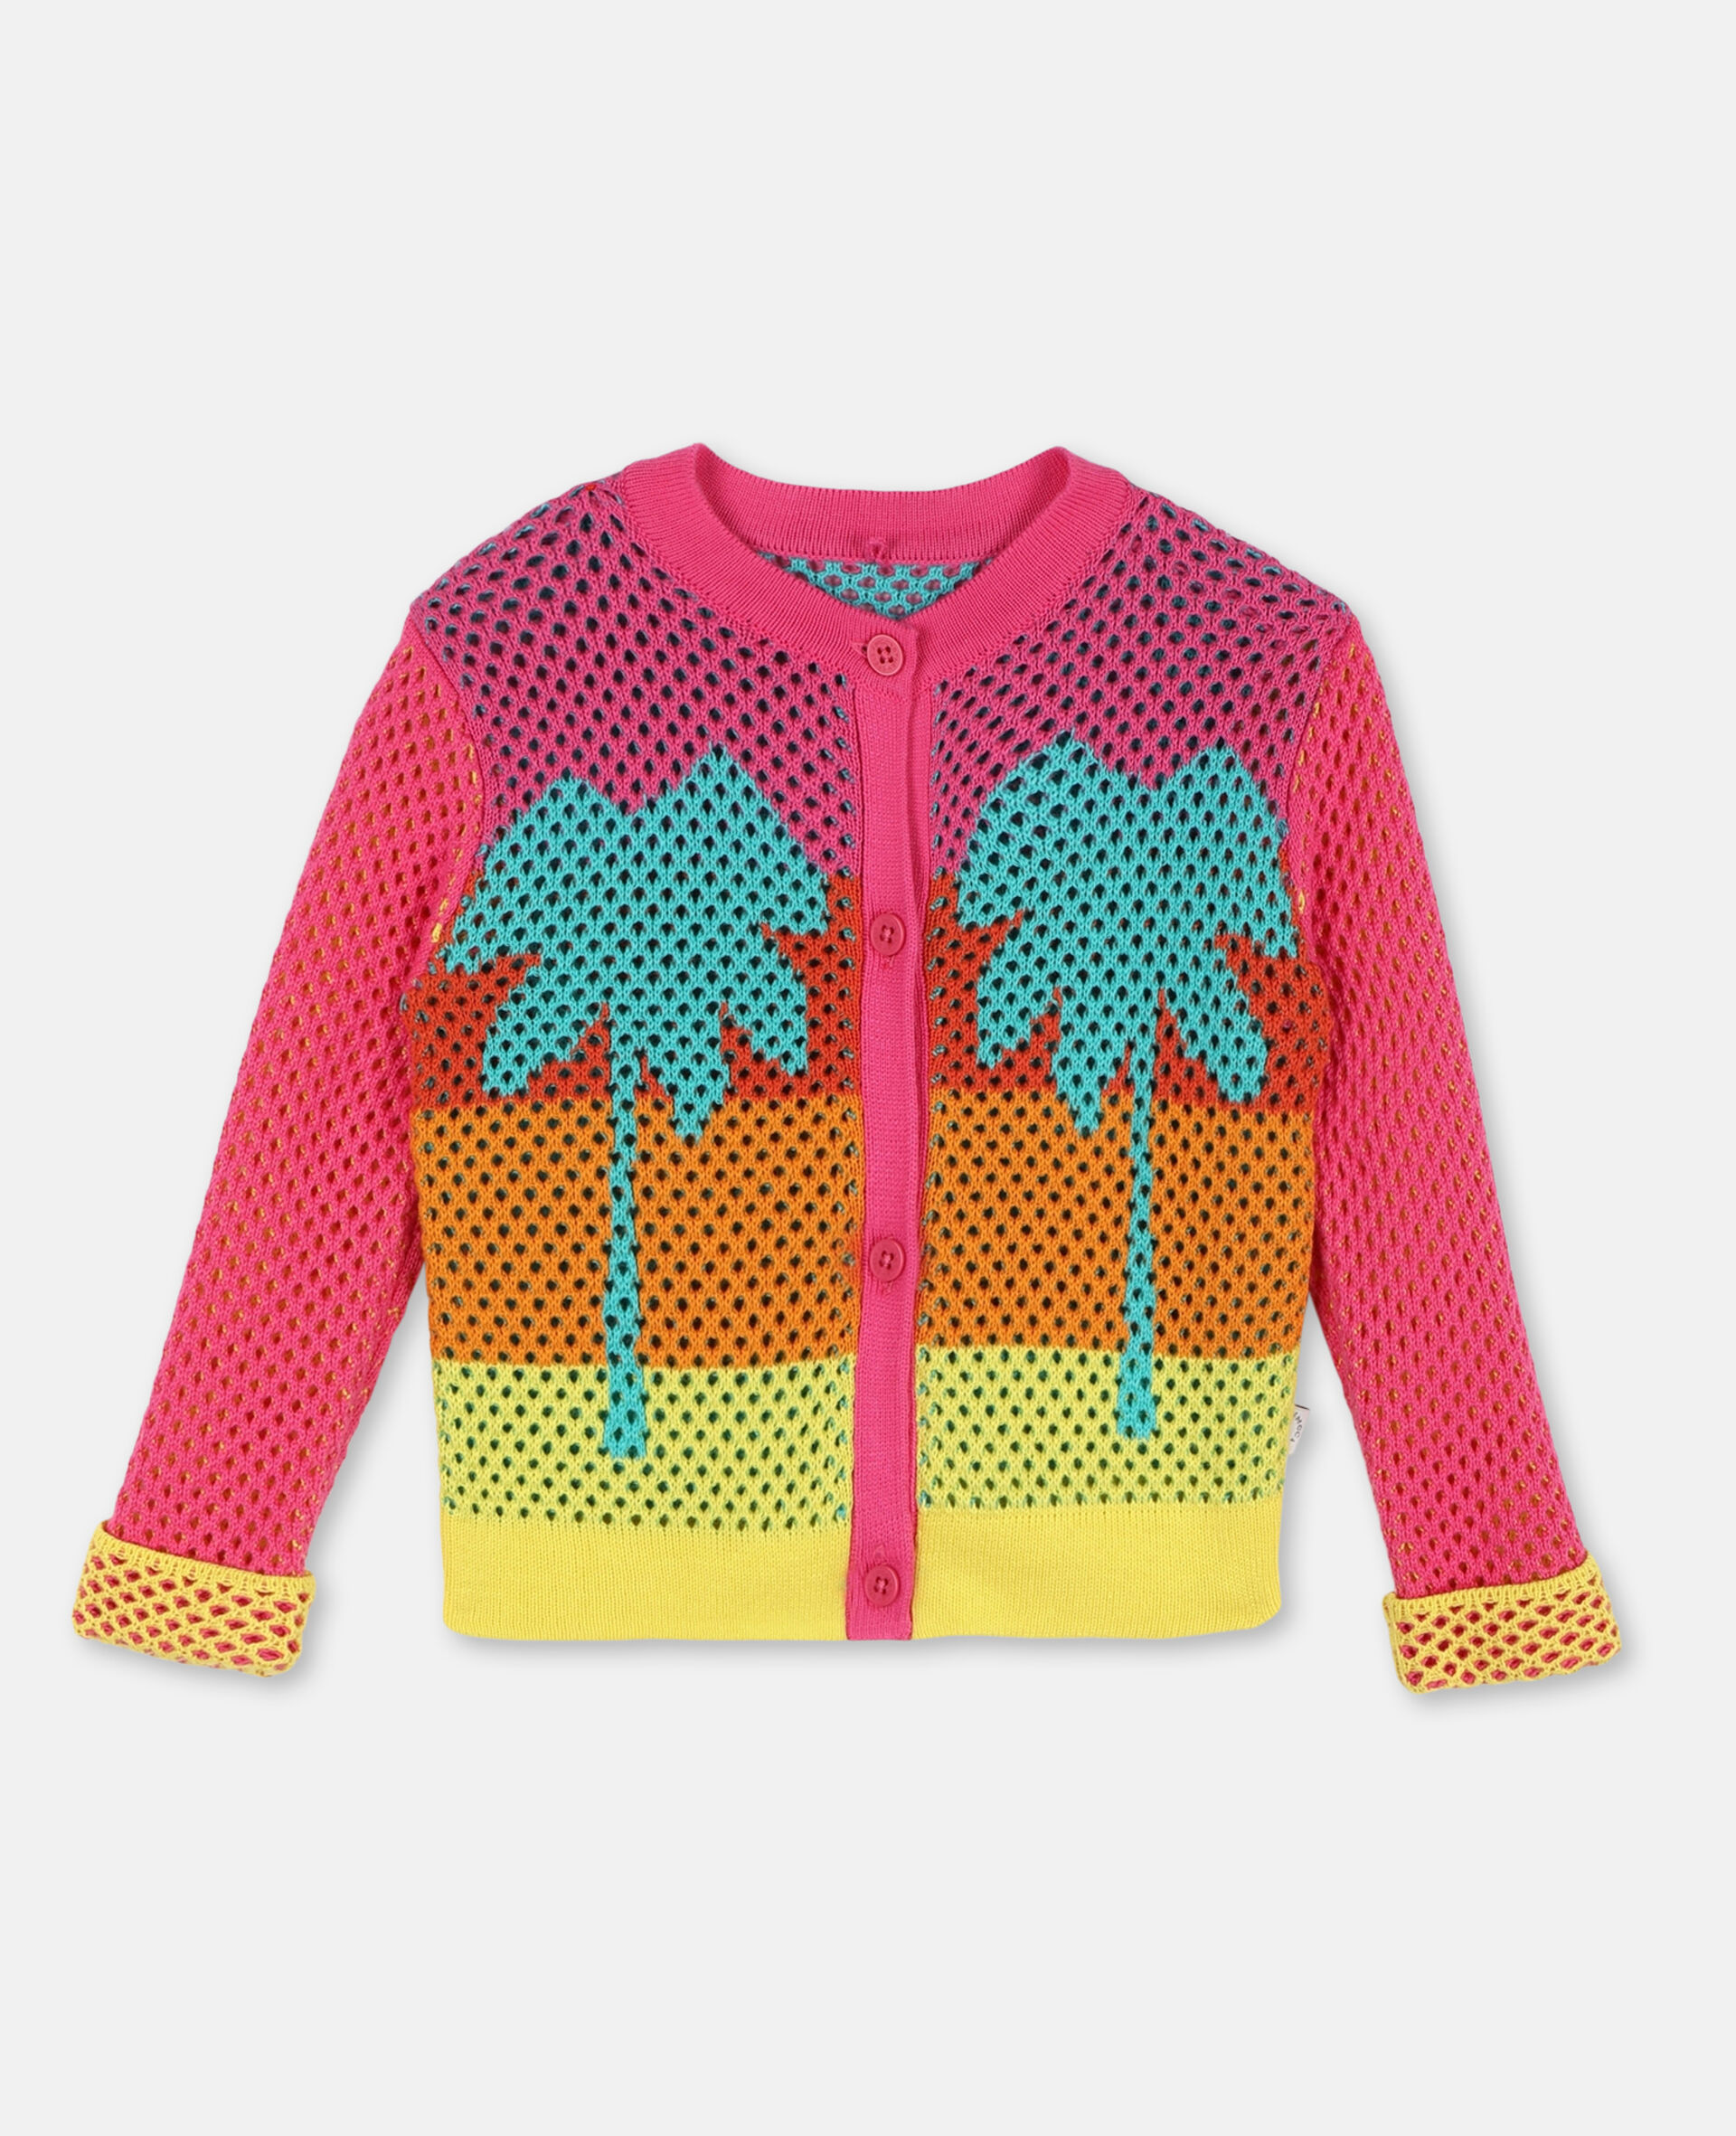 Intarsia Mesh Knit Cotton Cardigan-Multicolour-large image number 0